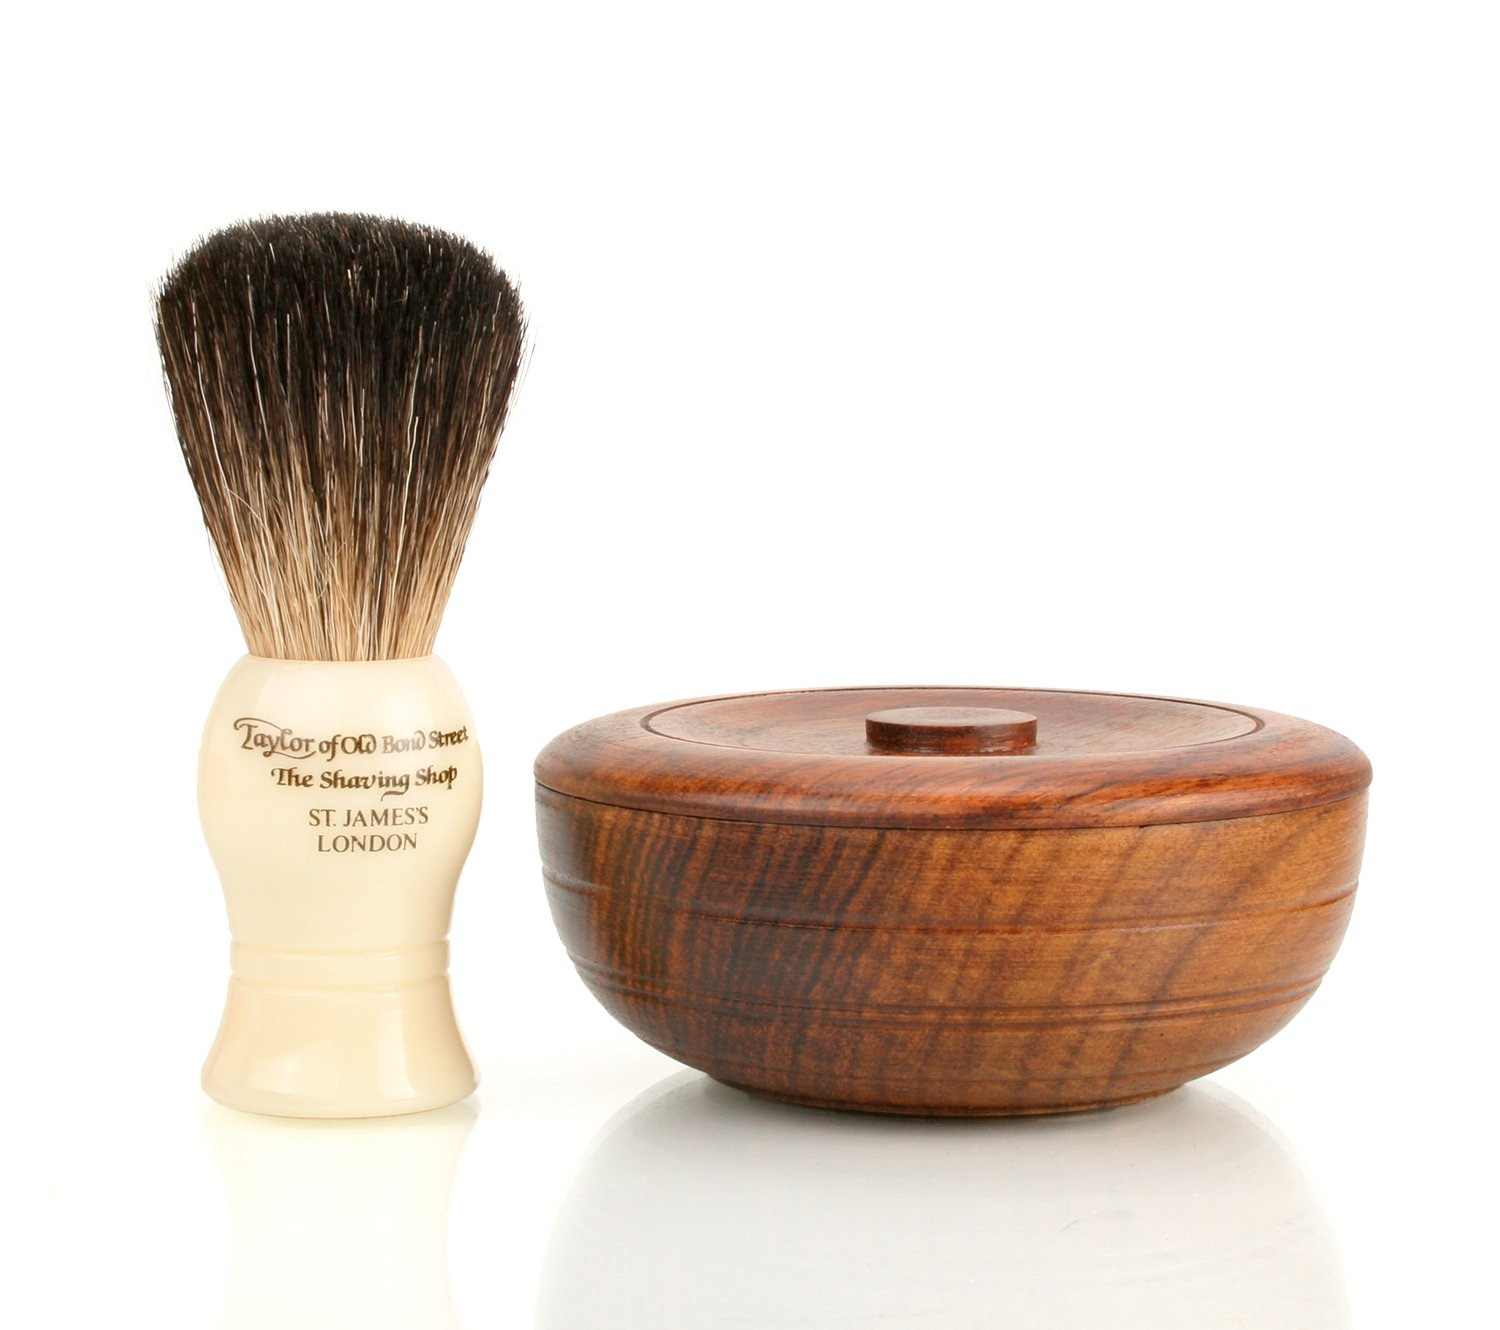 Taylor of Bond Street Pure Badger Brush and Sandalwood Soap in Wooden Bowl Taylor of Old Bond Street